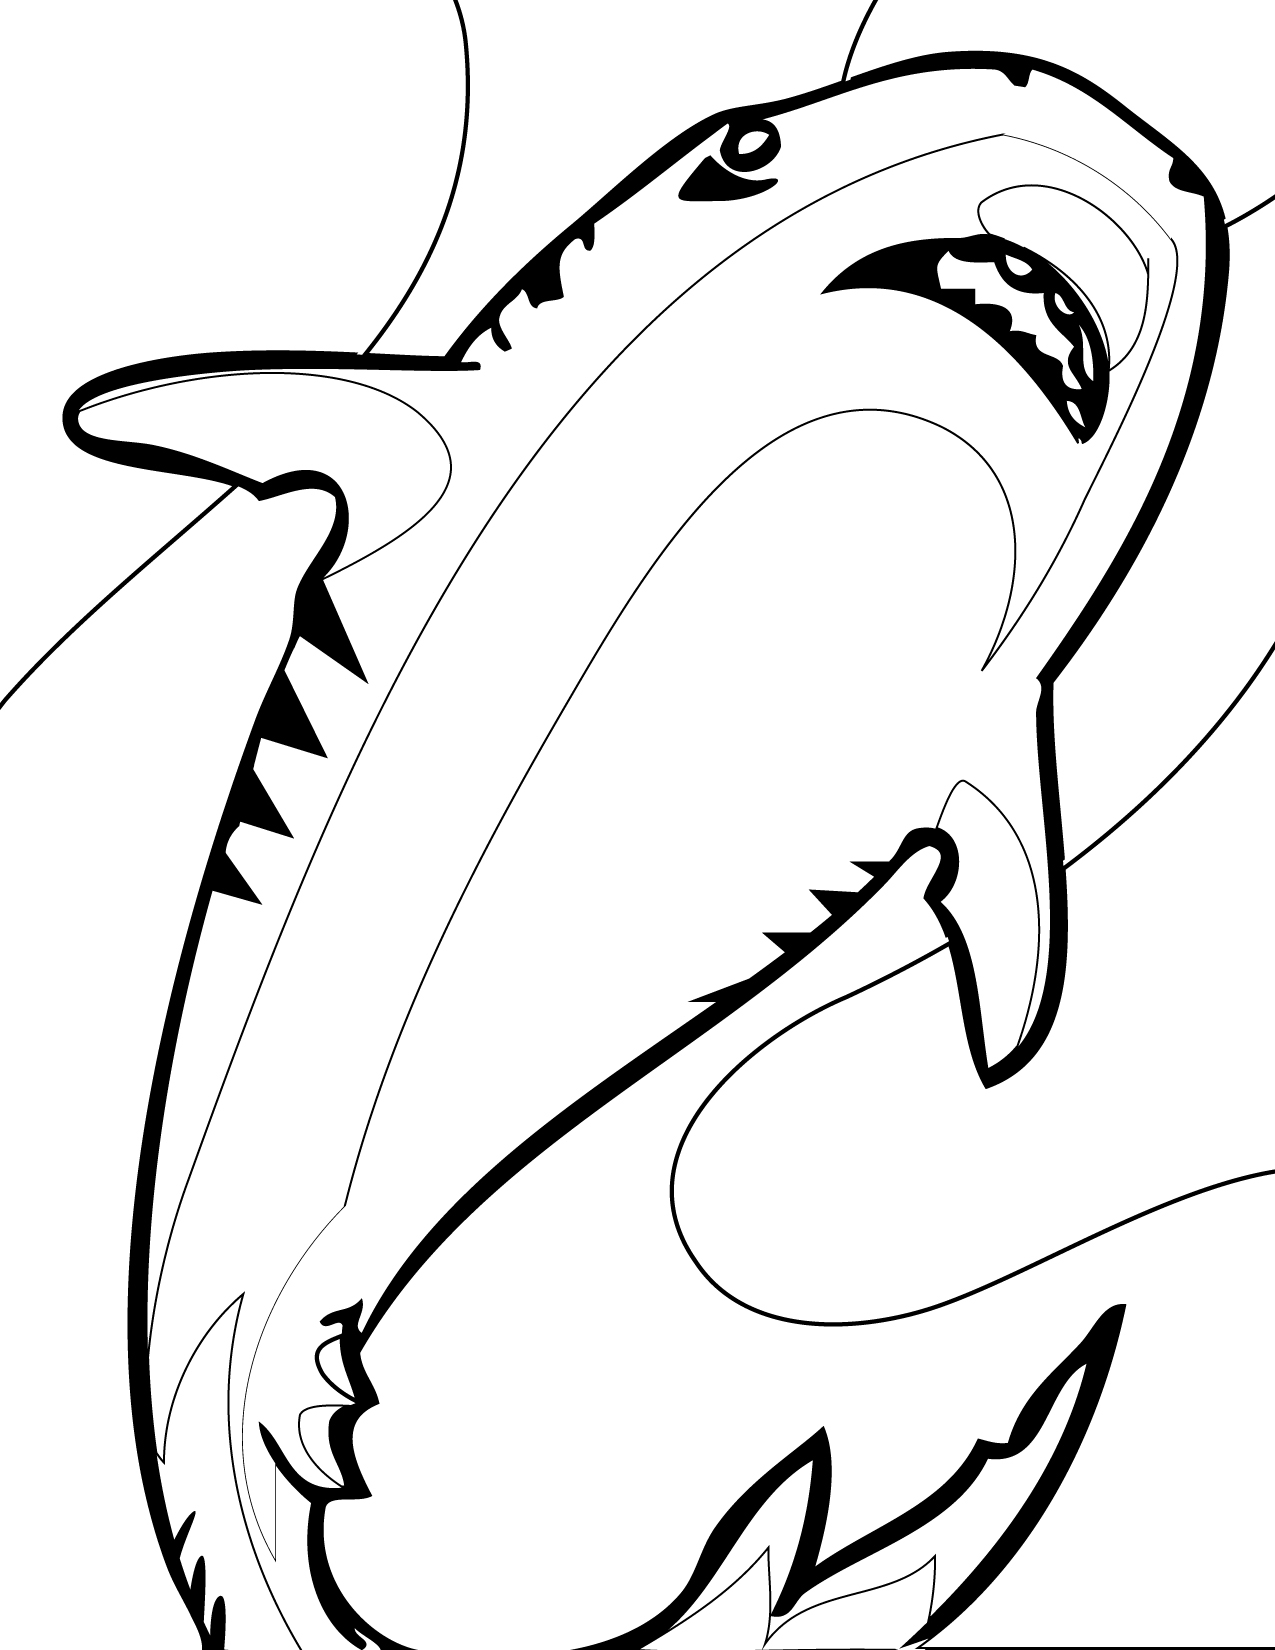 Shark Coloring Pages (5)